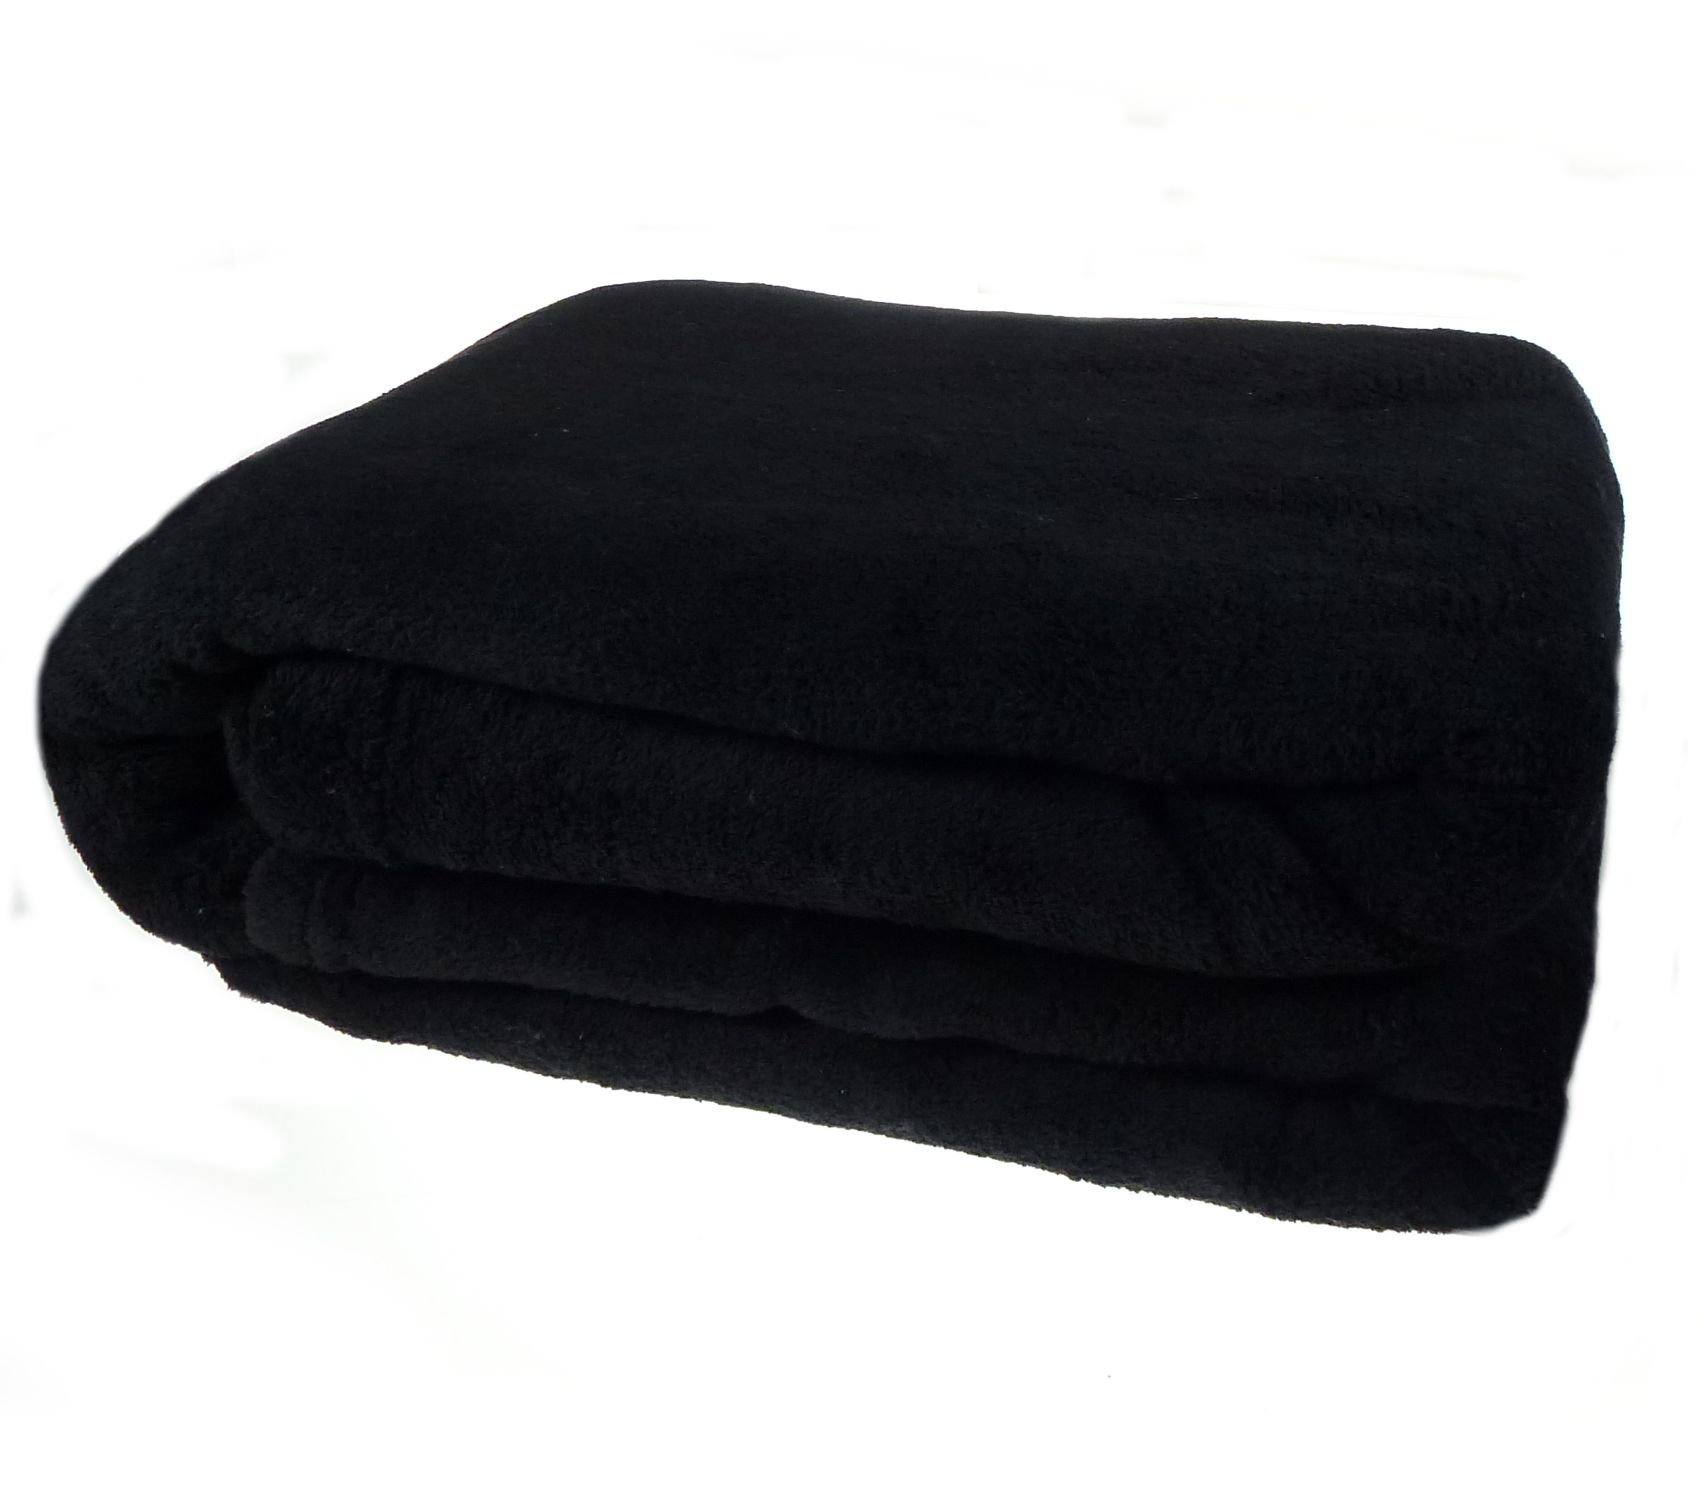 Shop for black throw blanket online at Target. Free shipping on purchases over $35 and save 5% every day with your Target REDcard.